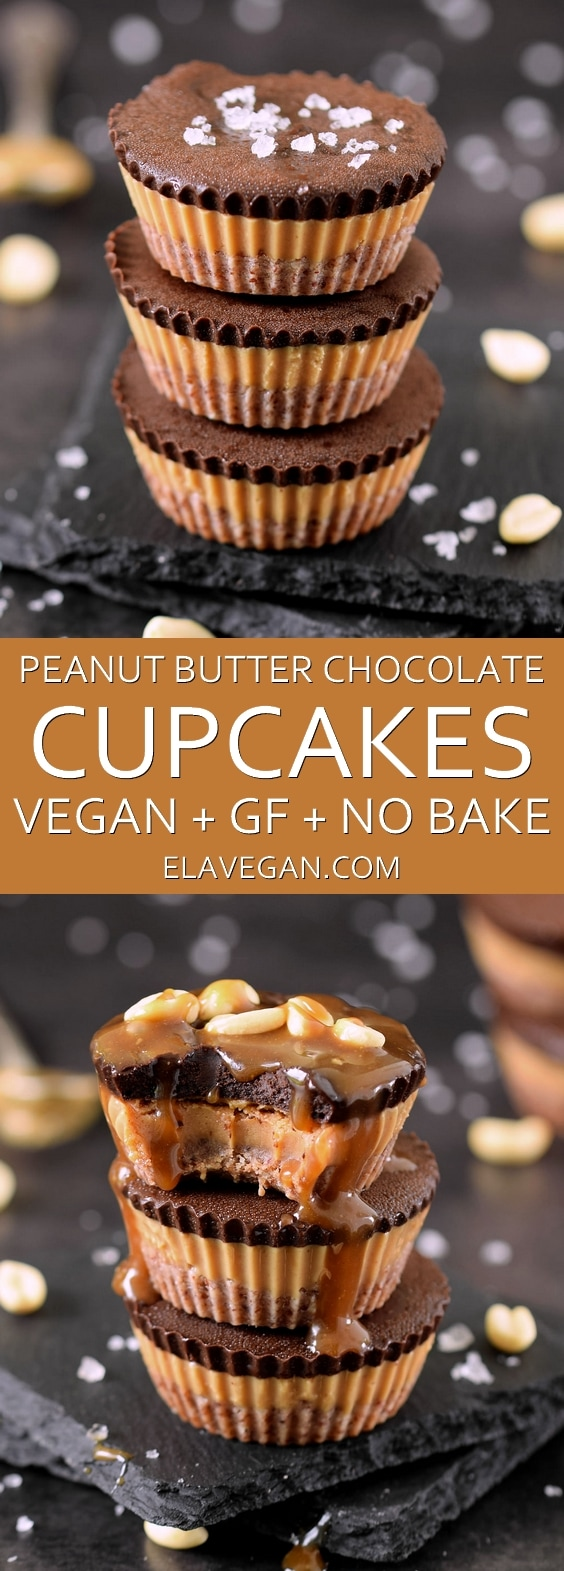 Vegan peanut butter chocolate cupcakes - a gluten free, refined sugar free and plant-based no bake dessert with peanuts and cacao nibs